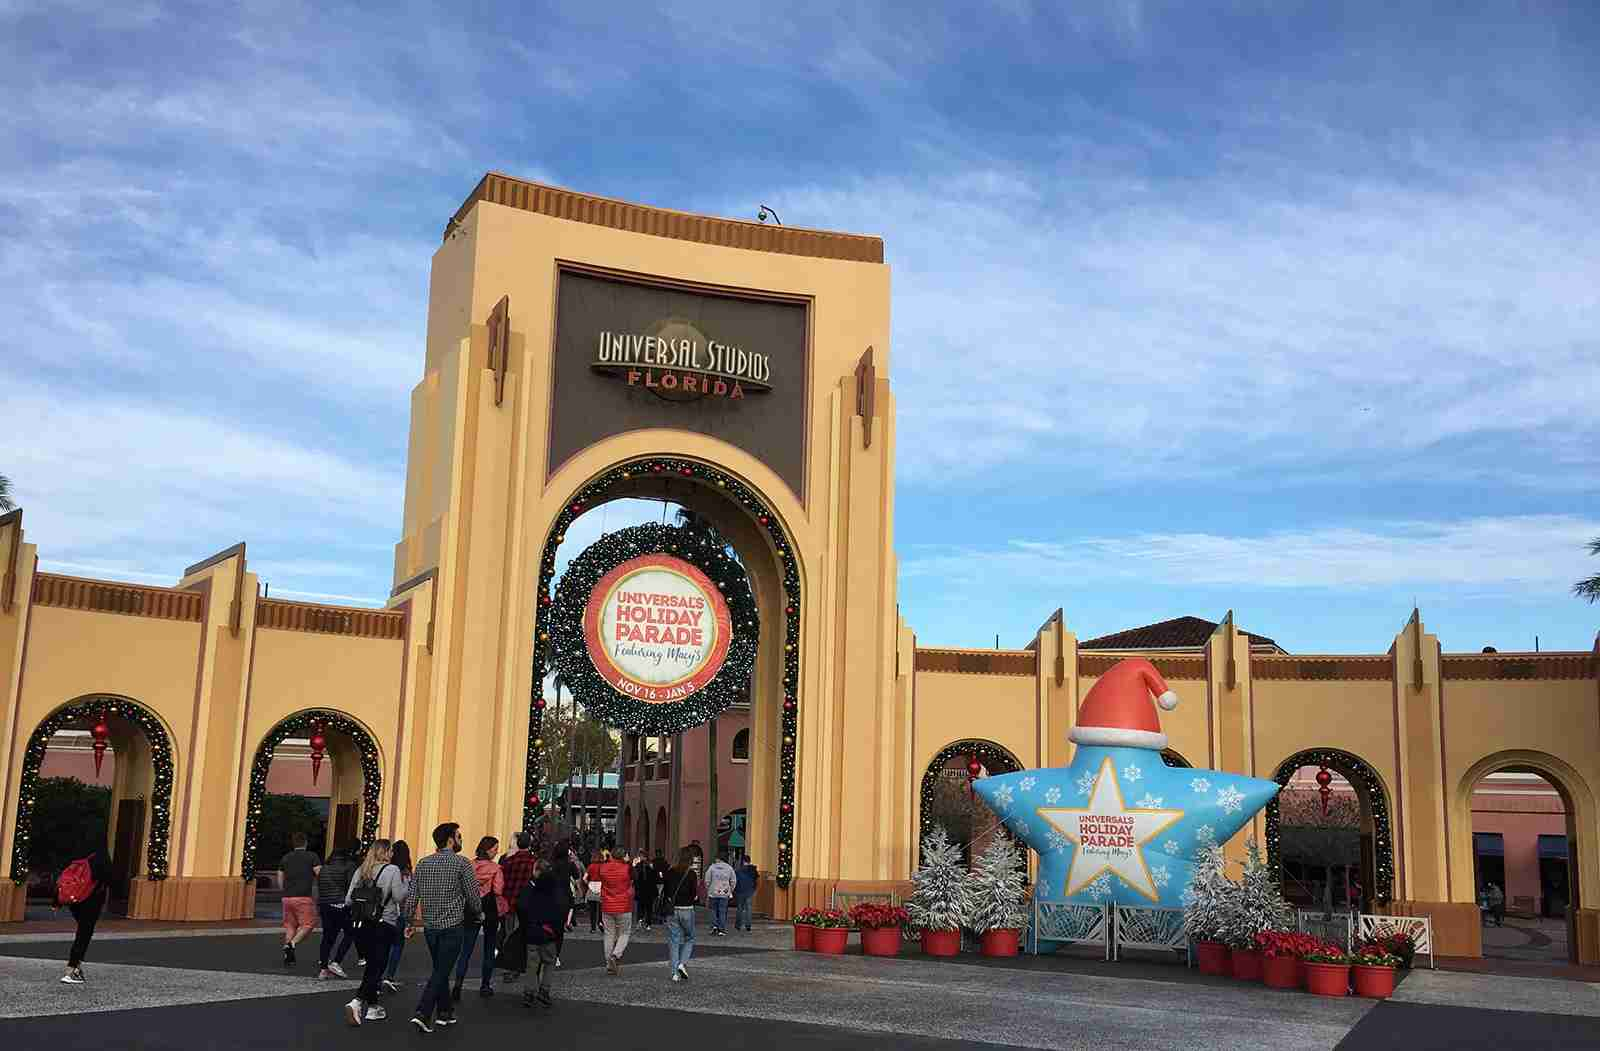 The entrance to Universal Studios. (Photo by Andrea M. Rotondo/The Points Guy.)